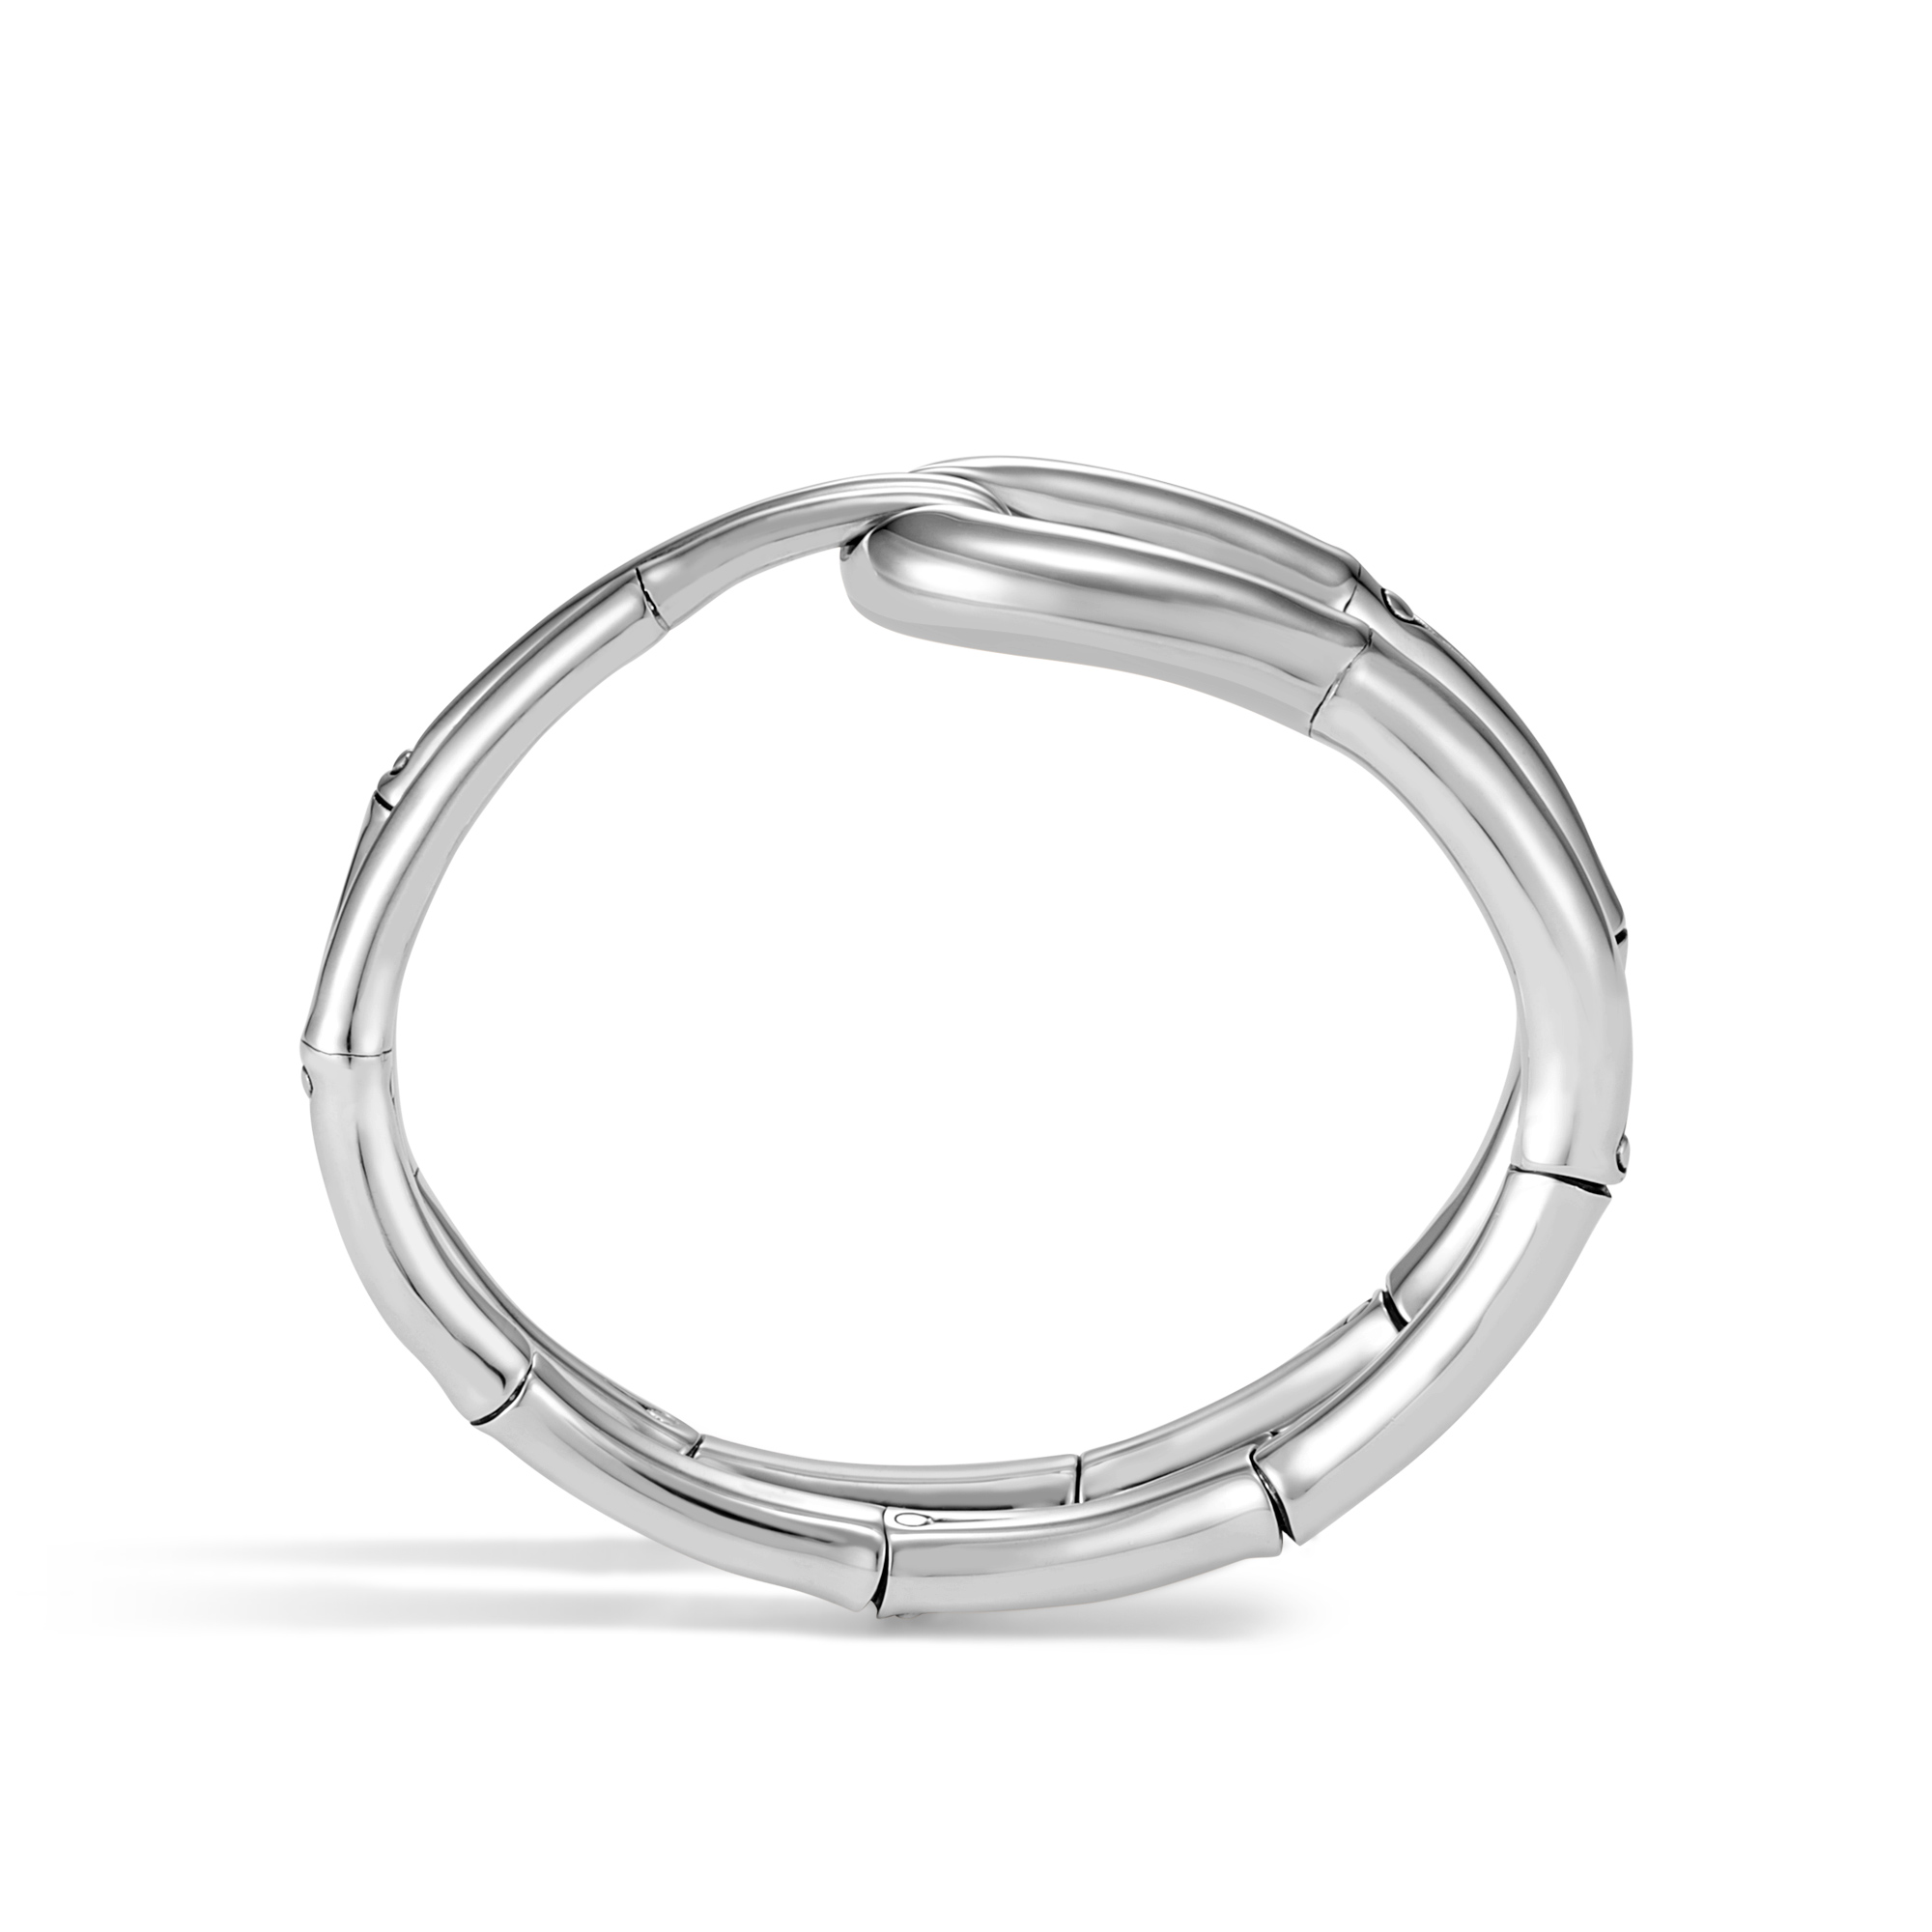 Bamboo 21MM Cuff in Silver, , large